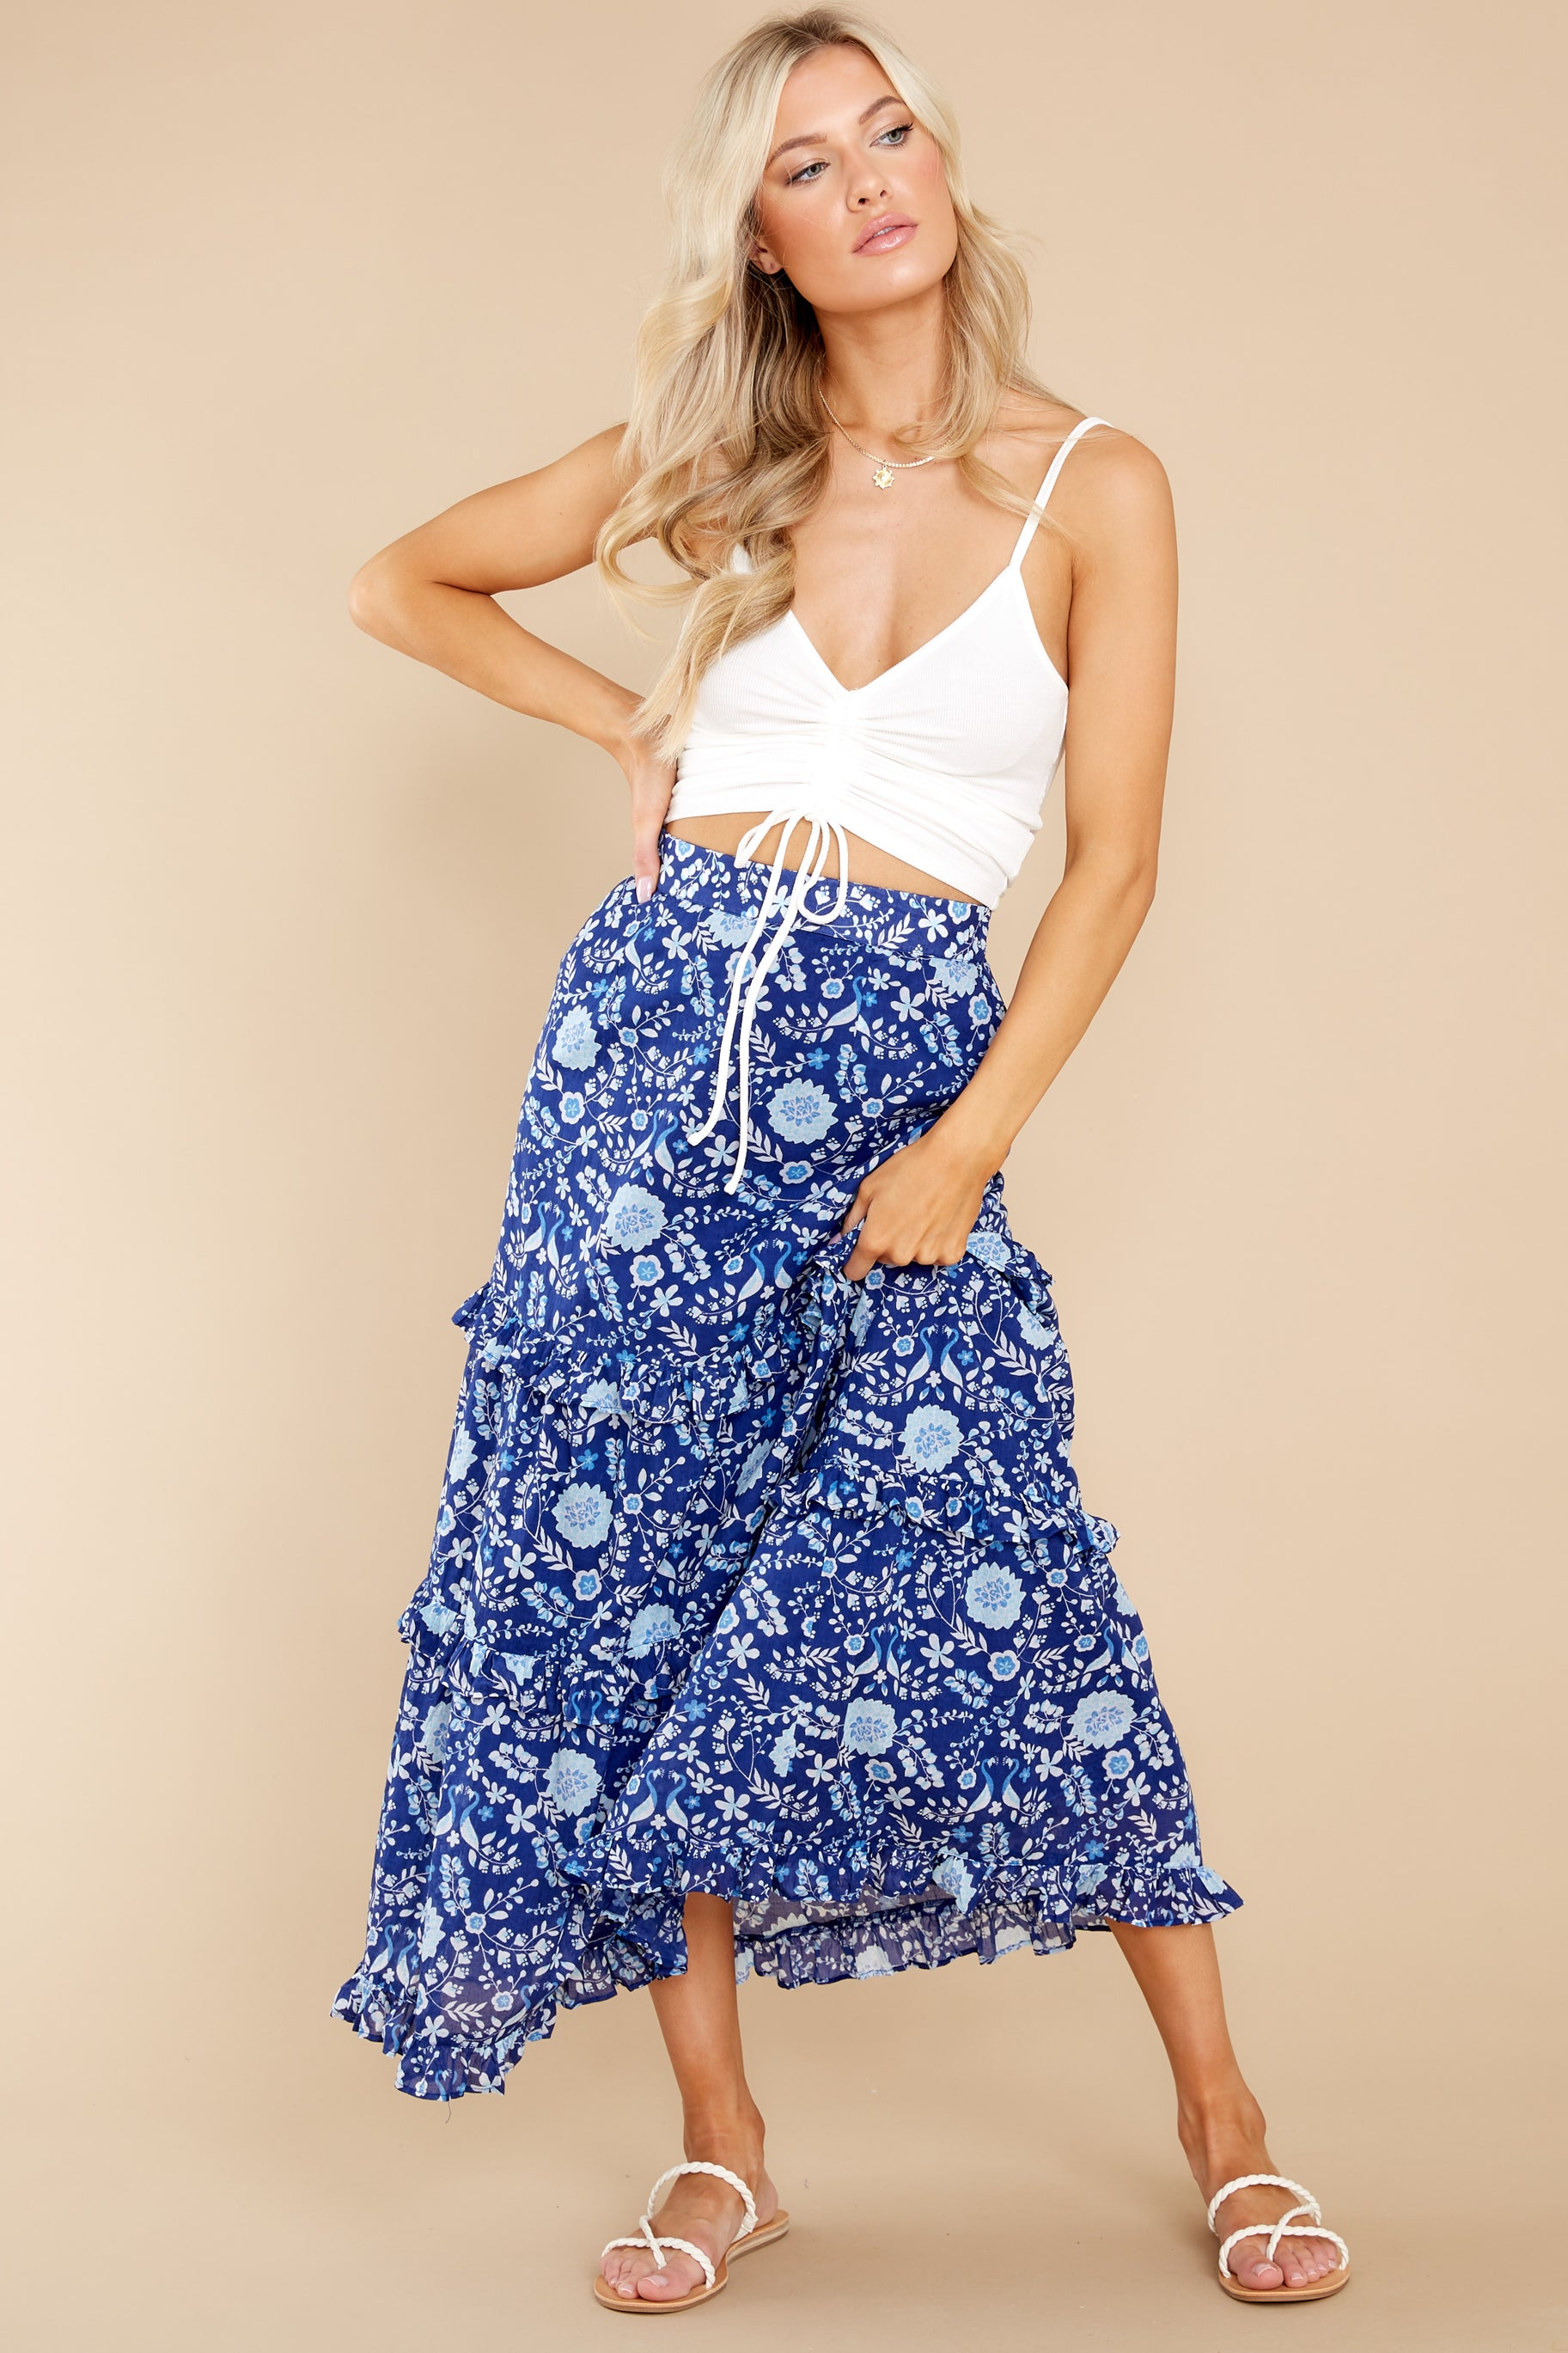 7 Lindsay Peacock Floral Indigo Skirt at reddress.com